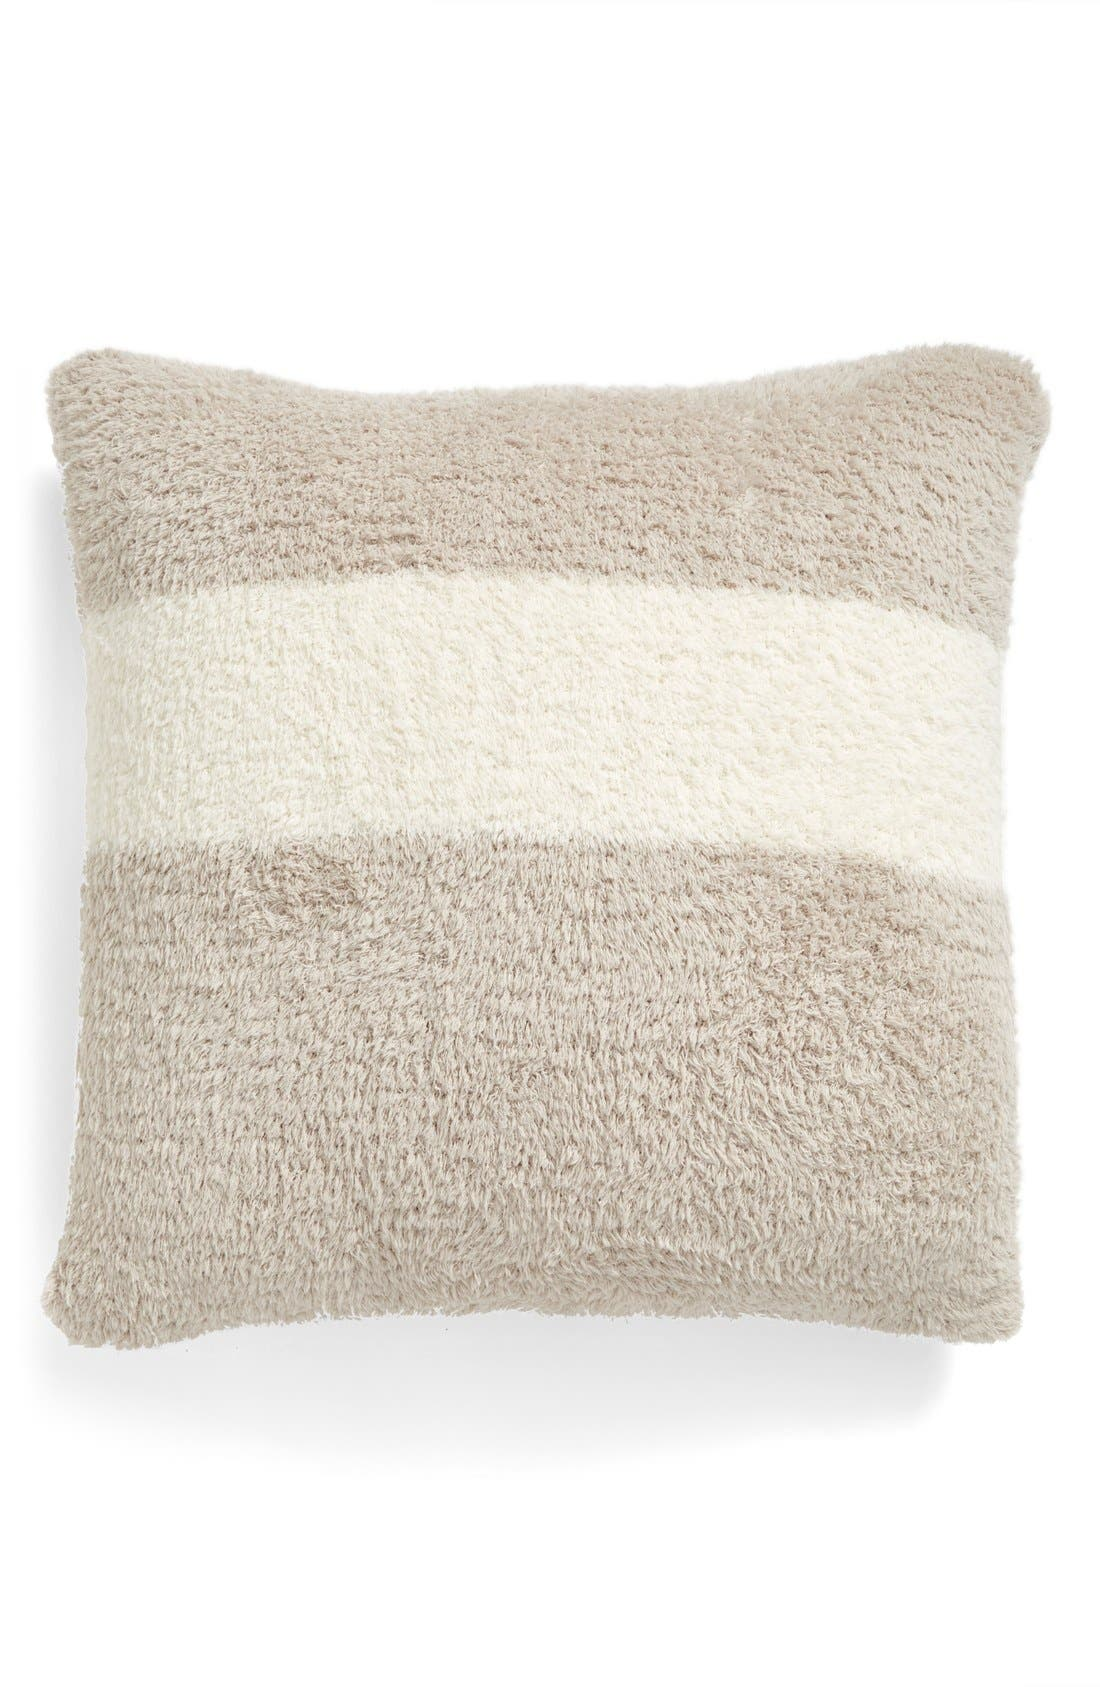 Main Image - Barefoot Dreams® CozyChic® Stripe Pillow